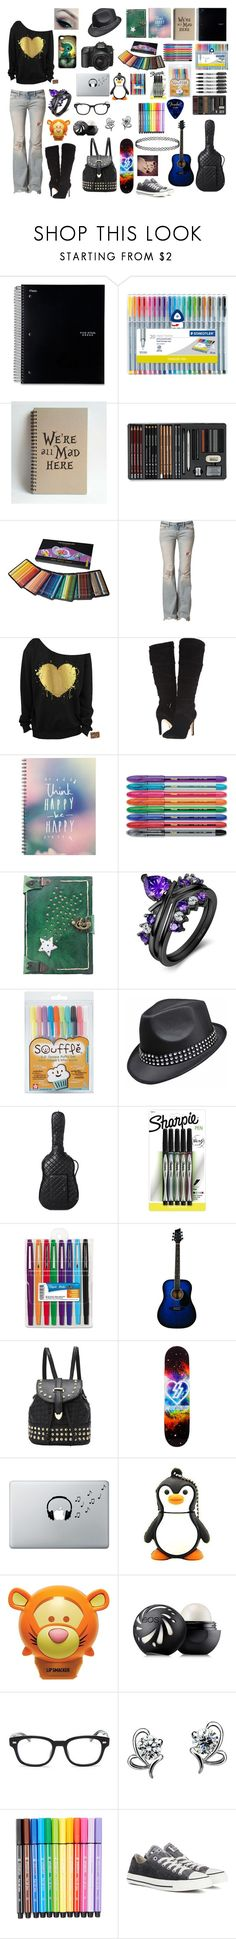 """""""Babysitting"""" by livyv123 ❤ liked on Polyvore featuring Sharpie, Free People, GUESS, R.S.V.P, Disney, Chanel, Paper Mate, Music Notes, Eos and Gucci"""